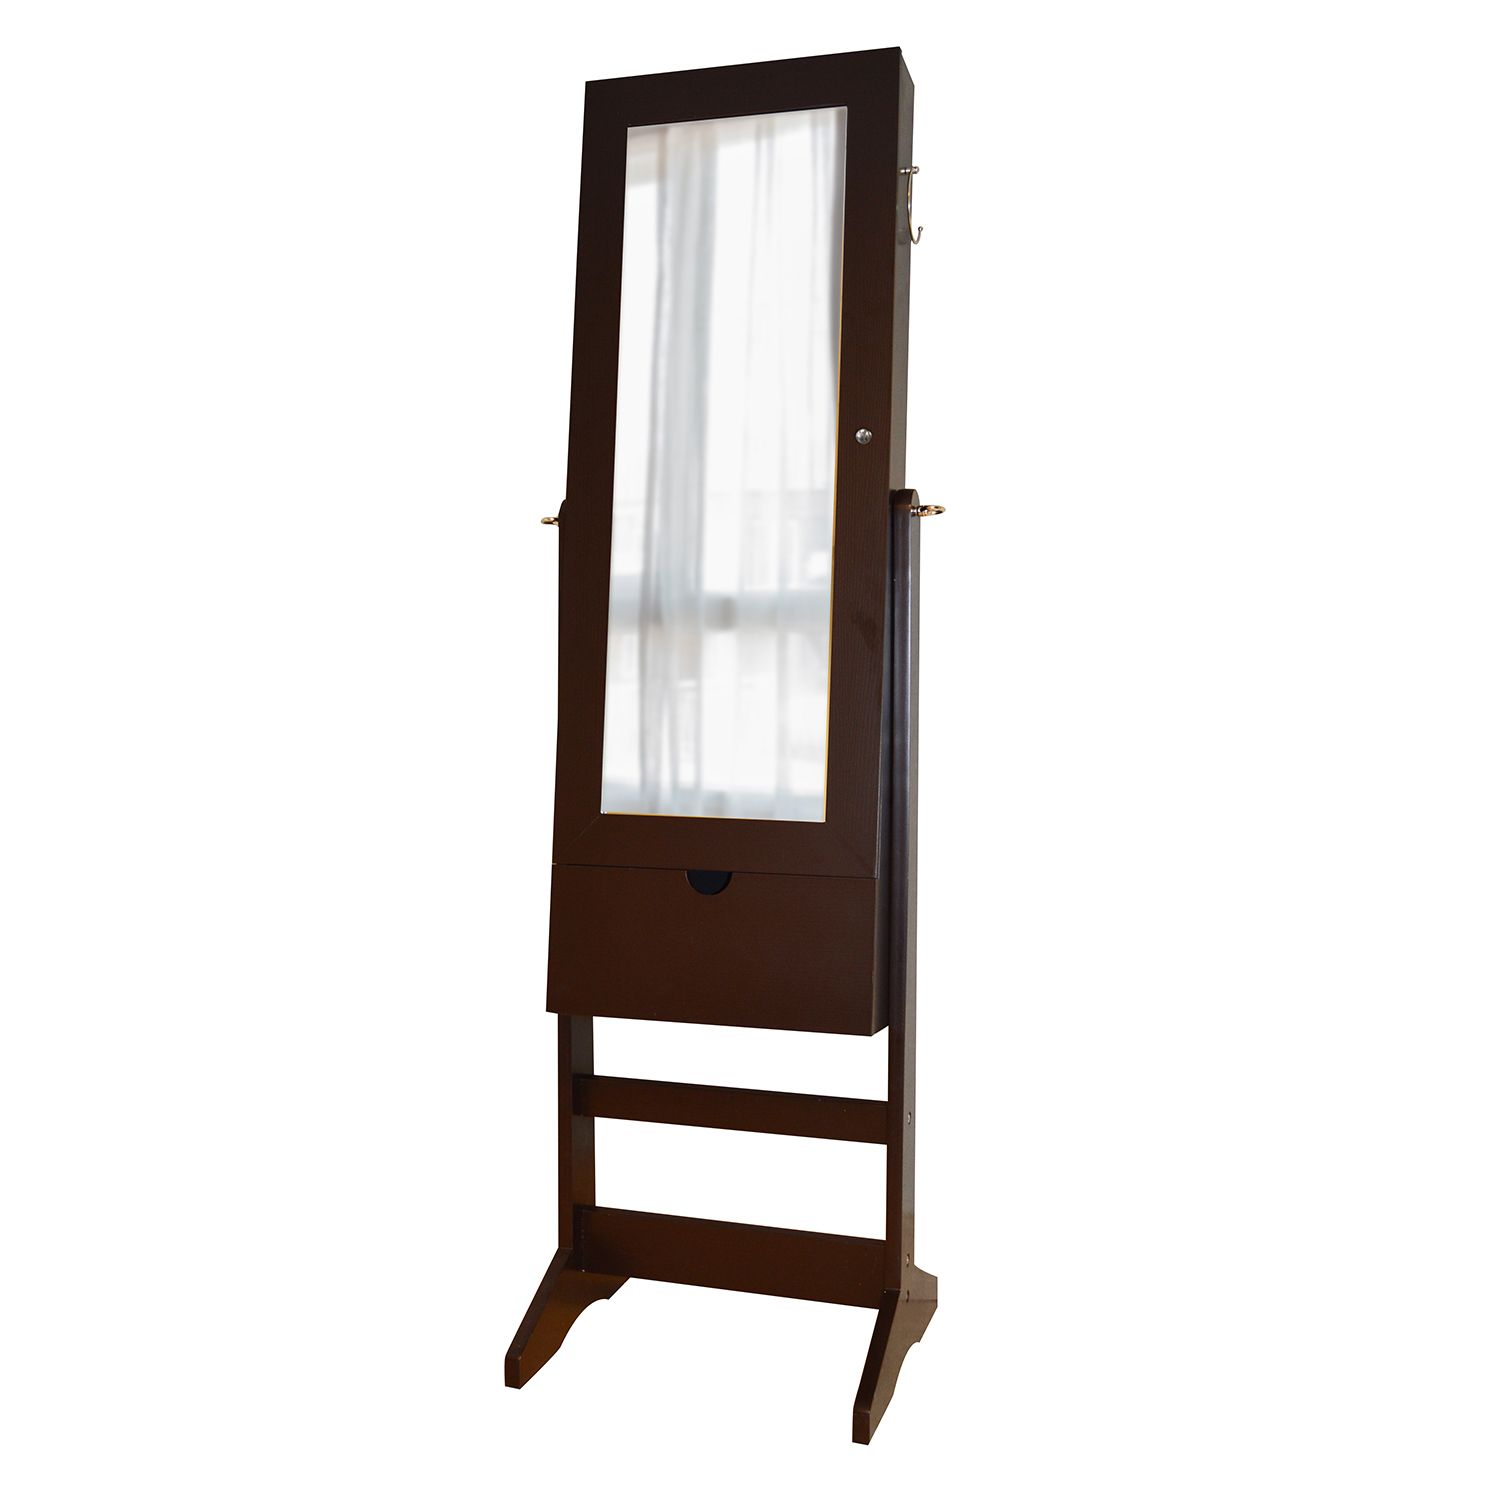 View Wall Floor OverTheDoor 3in1 Mirror Jewelry Cabinet